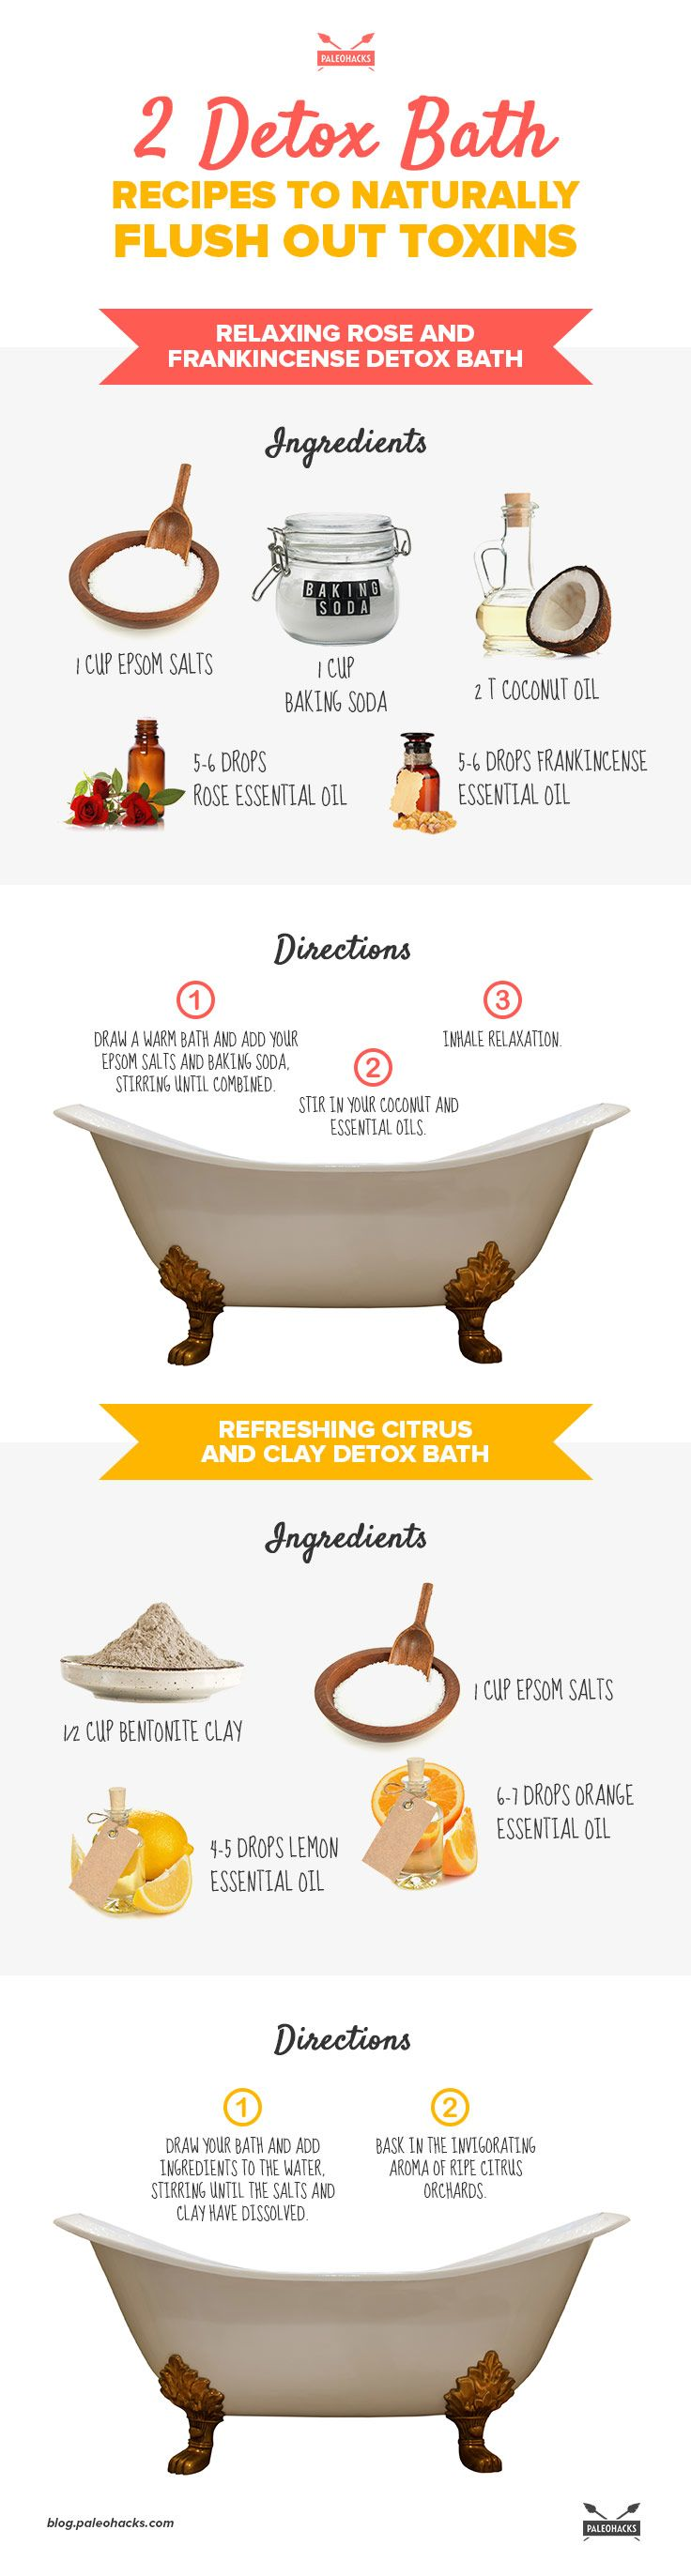 2-Detox-Bath-Recipes-to-Naturally-Flush-Out-Toxins-infog2-1.jpg